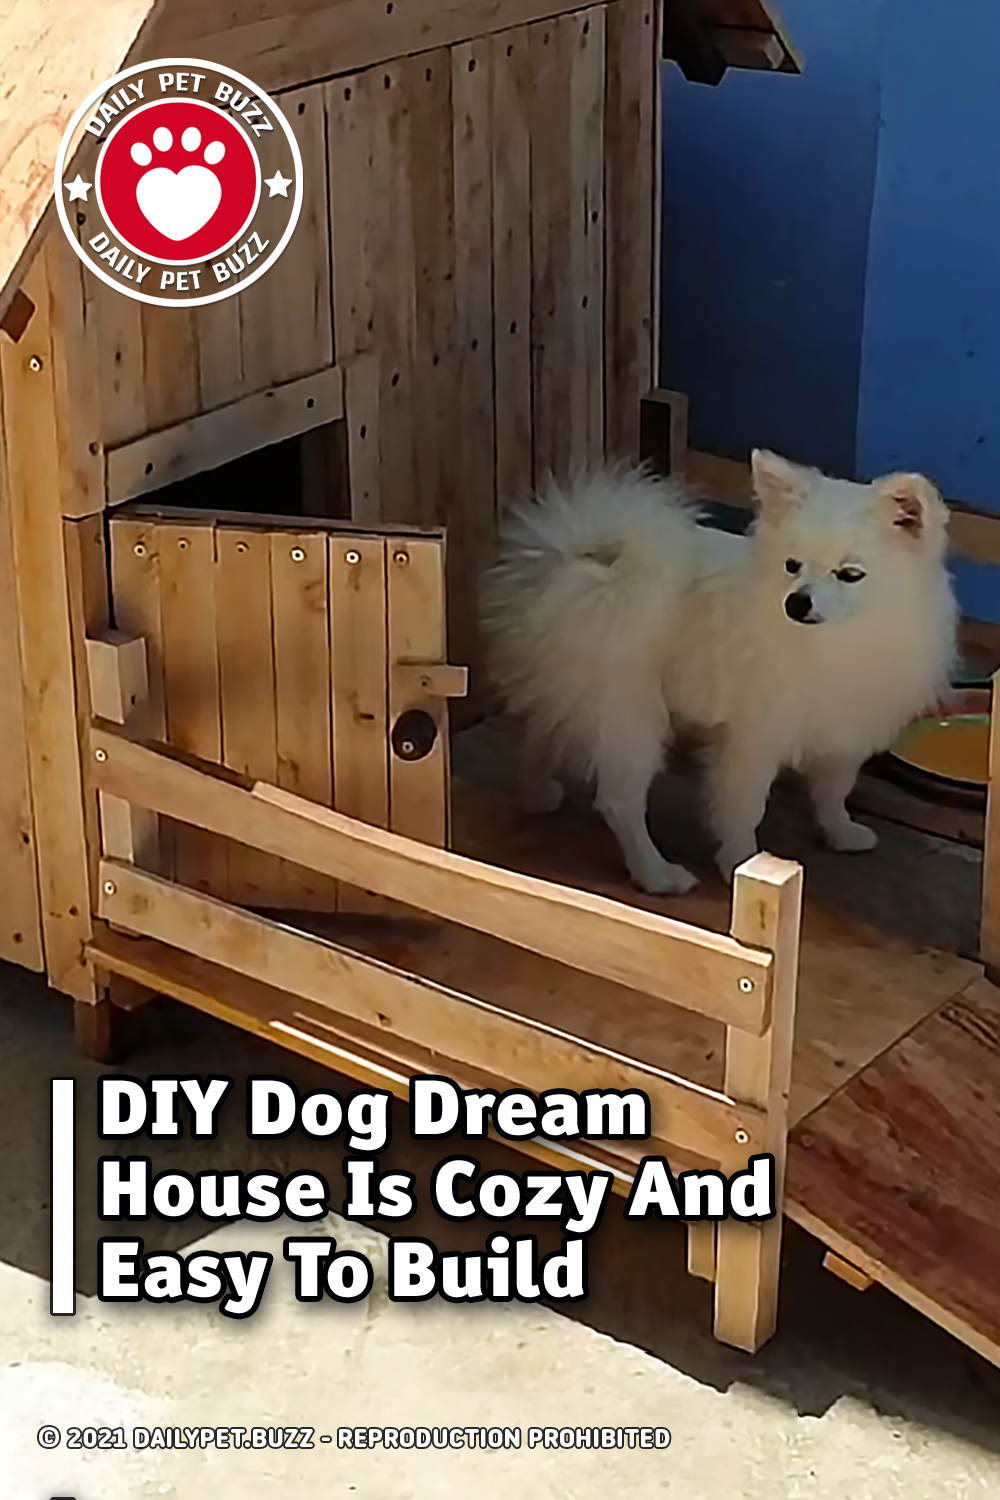 DIY Dog Dream House Is Cozy And Easy To Build